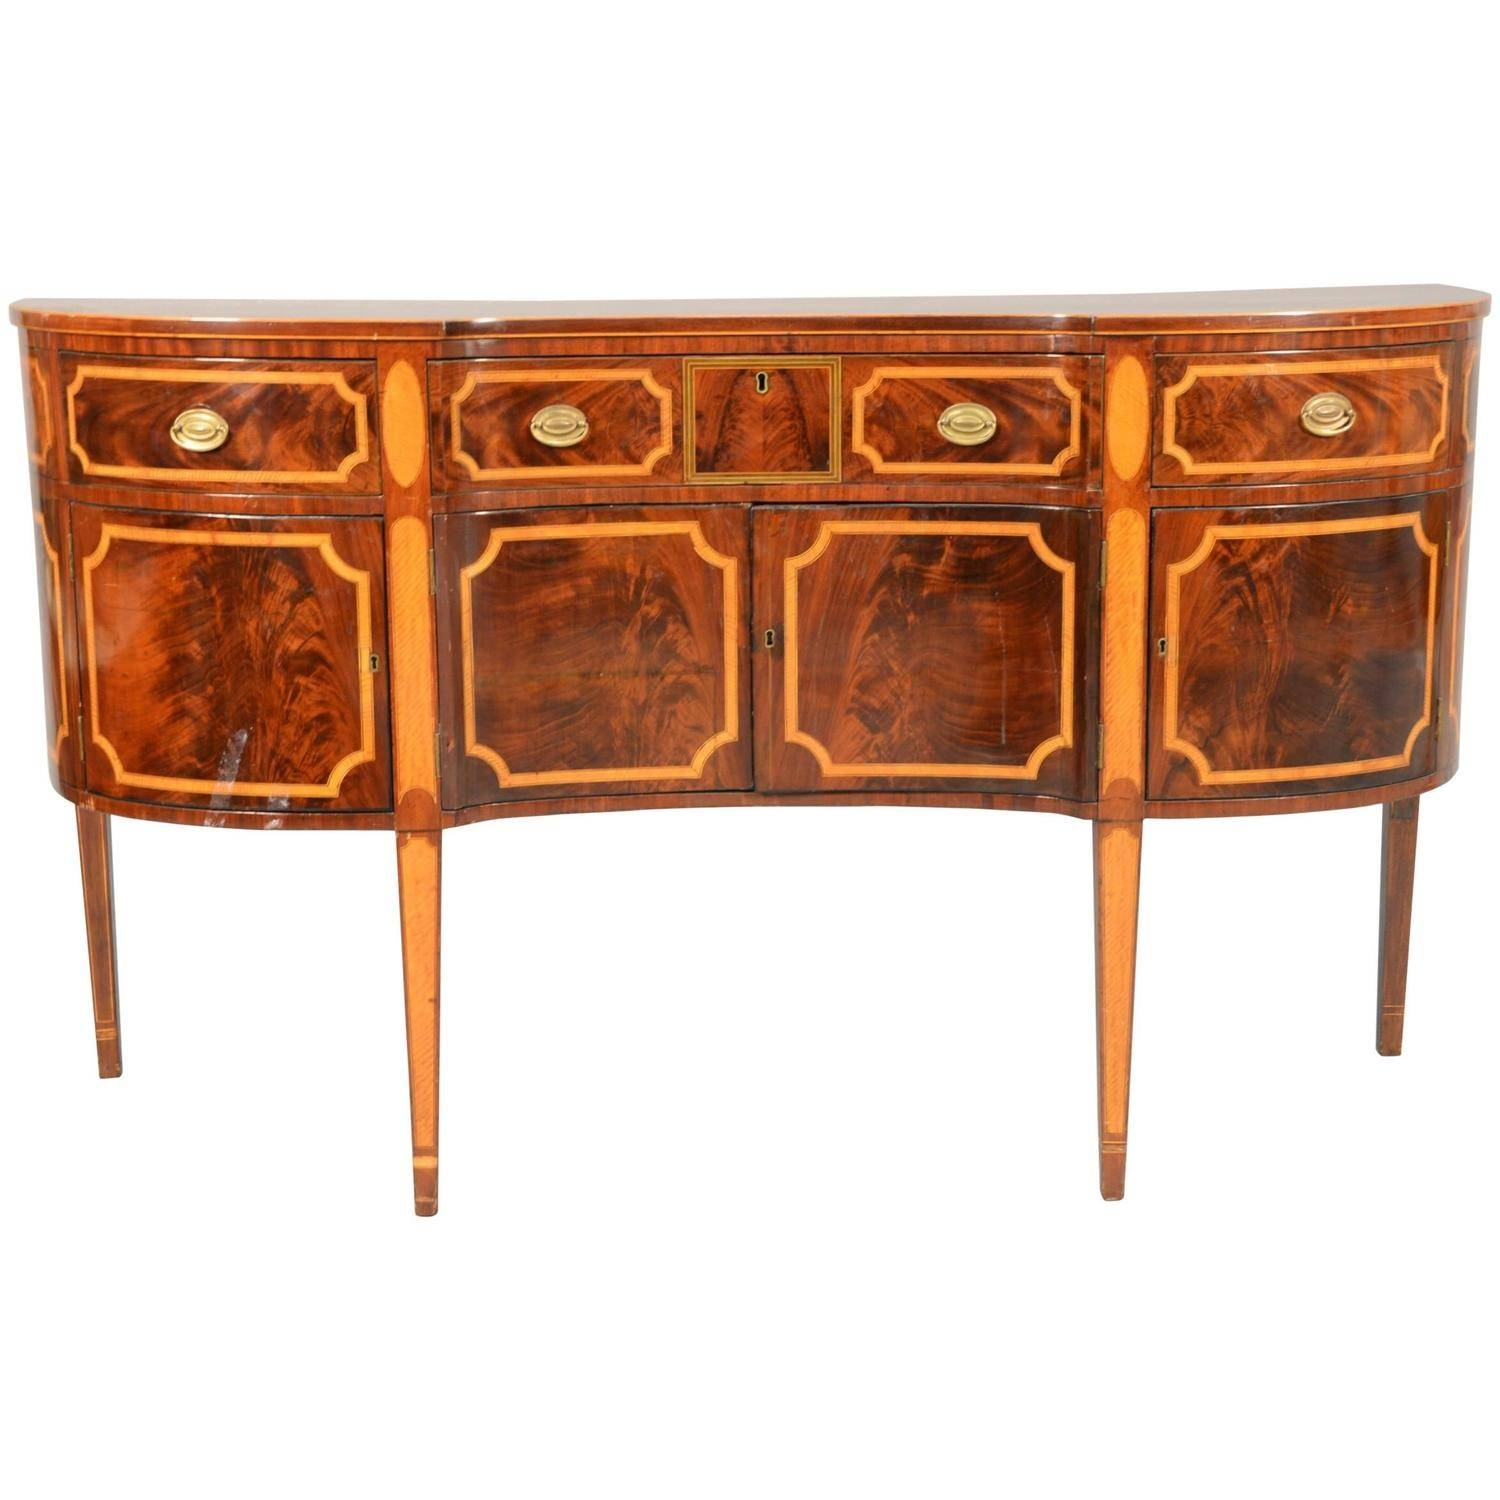 Period American Federal Sideboard In Mahogany With Tiger Maple Within Current Maple Sideboards (View 10 of 15)